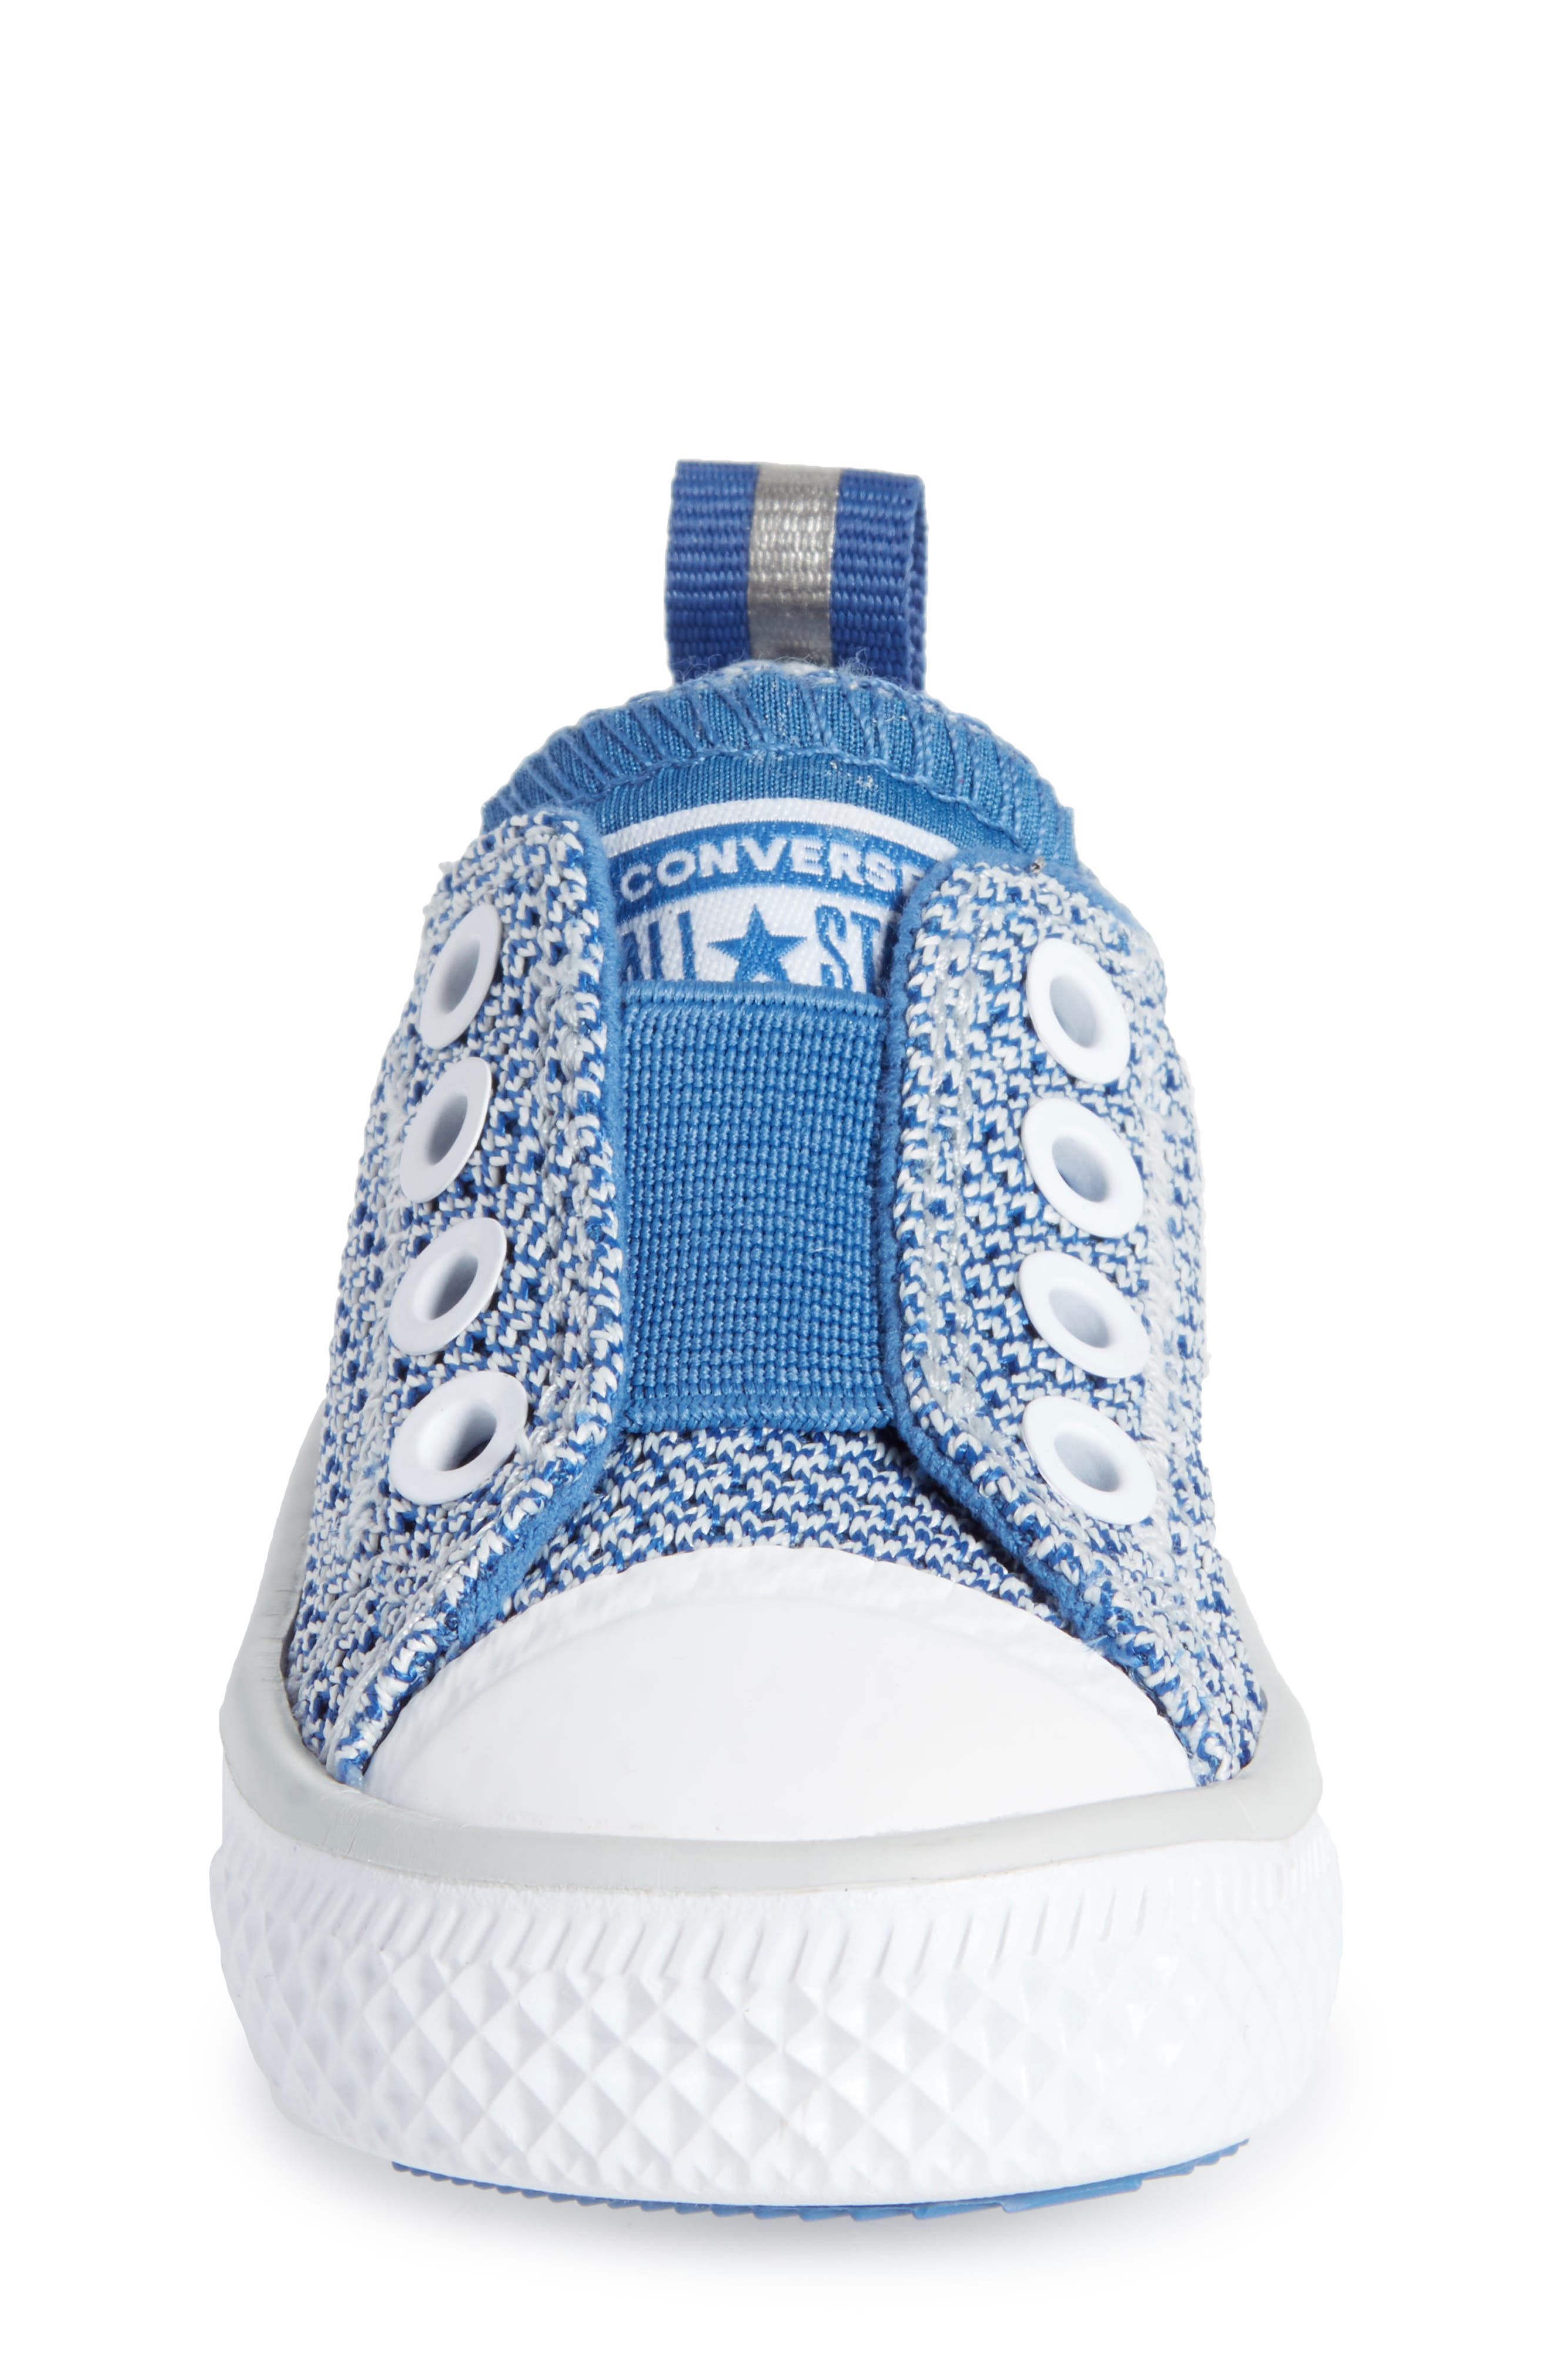 Chuck Taylor<sup>®</sup> All Star<sup>®</sup> Hyper Lite Slip-On Sneaker,                             Alternate thumbnail 4, color,                             020